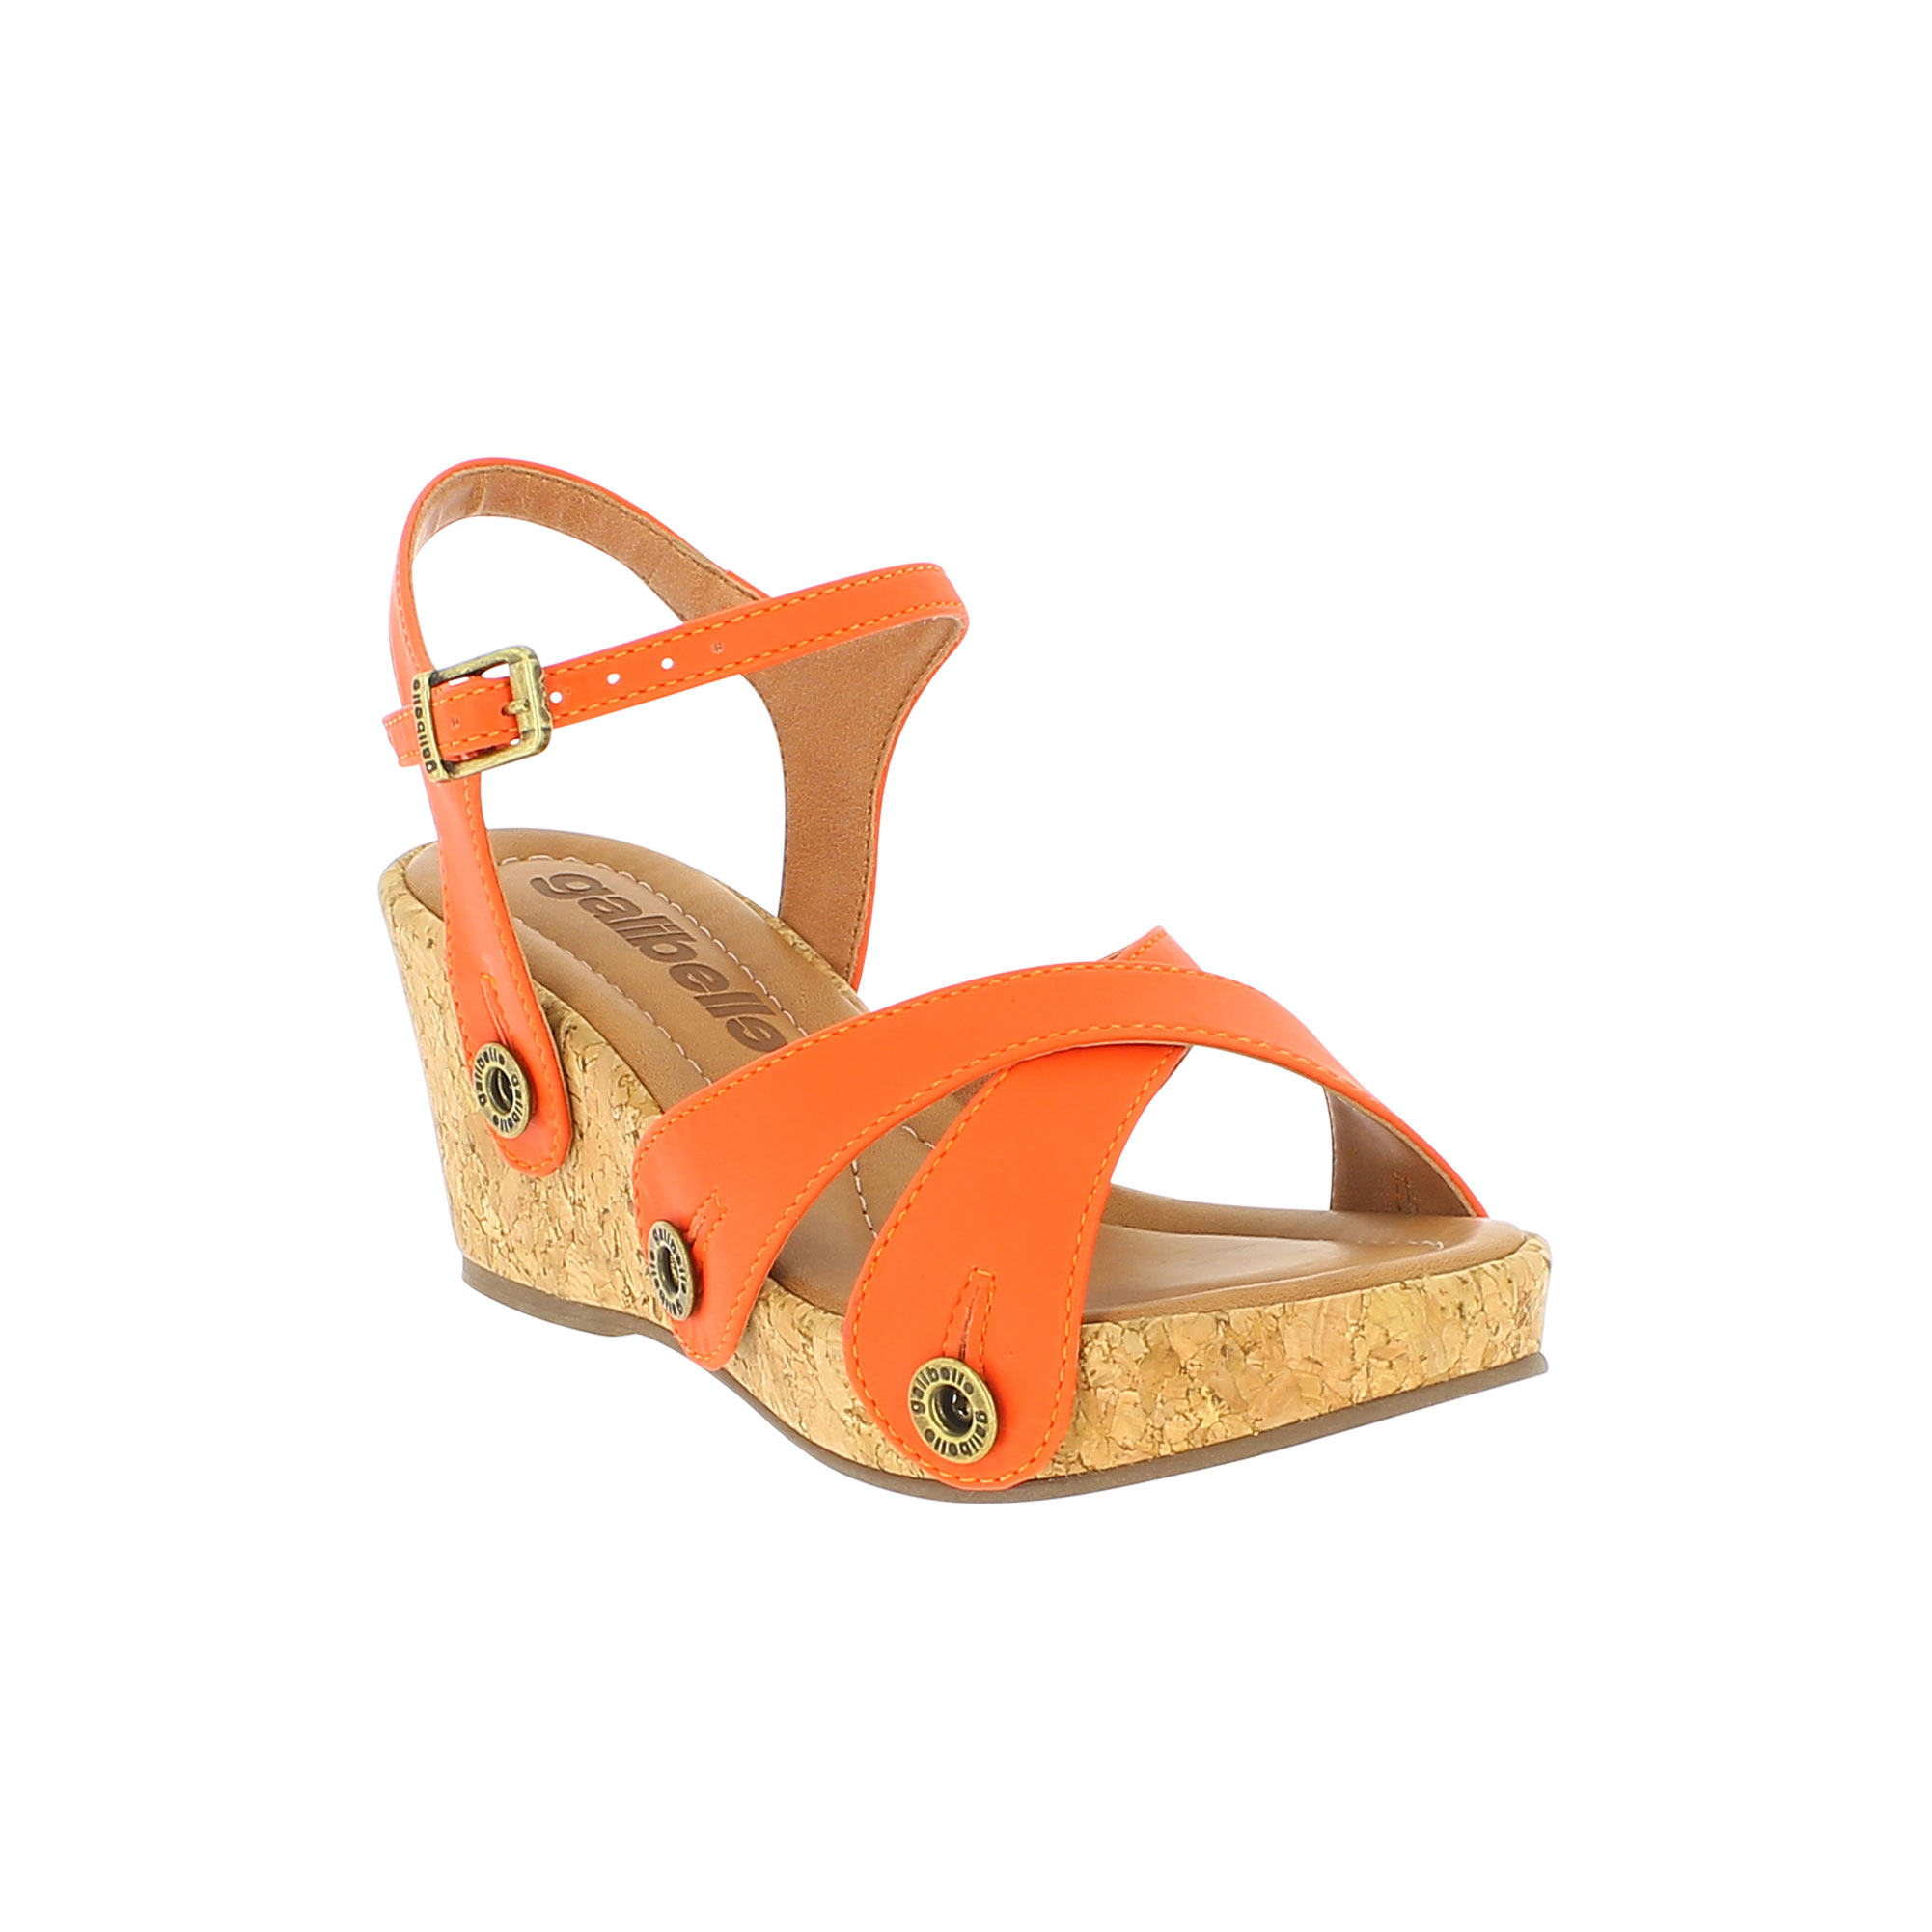 Dani sandals from Galibelle interchangeable straps and soles